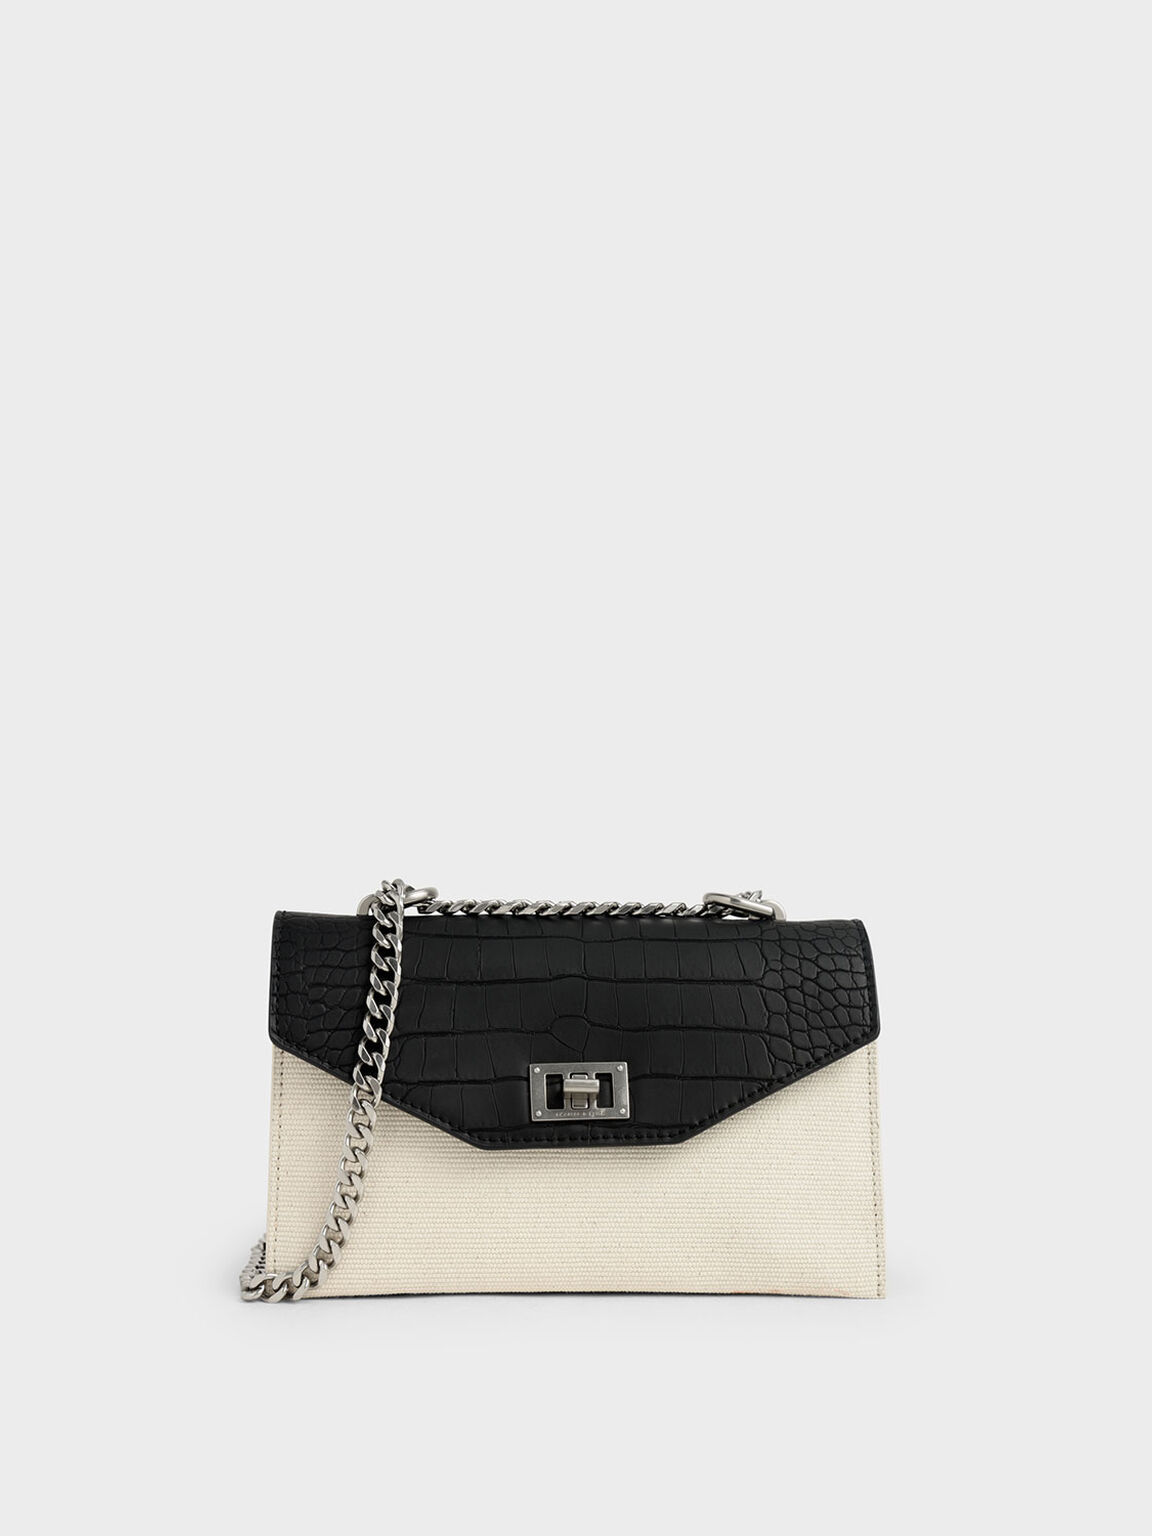 Croc-Effect Canvas Turn-Lock Crossbody Bag, Multi, hi-res